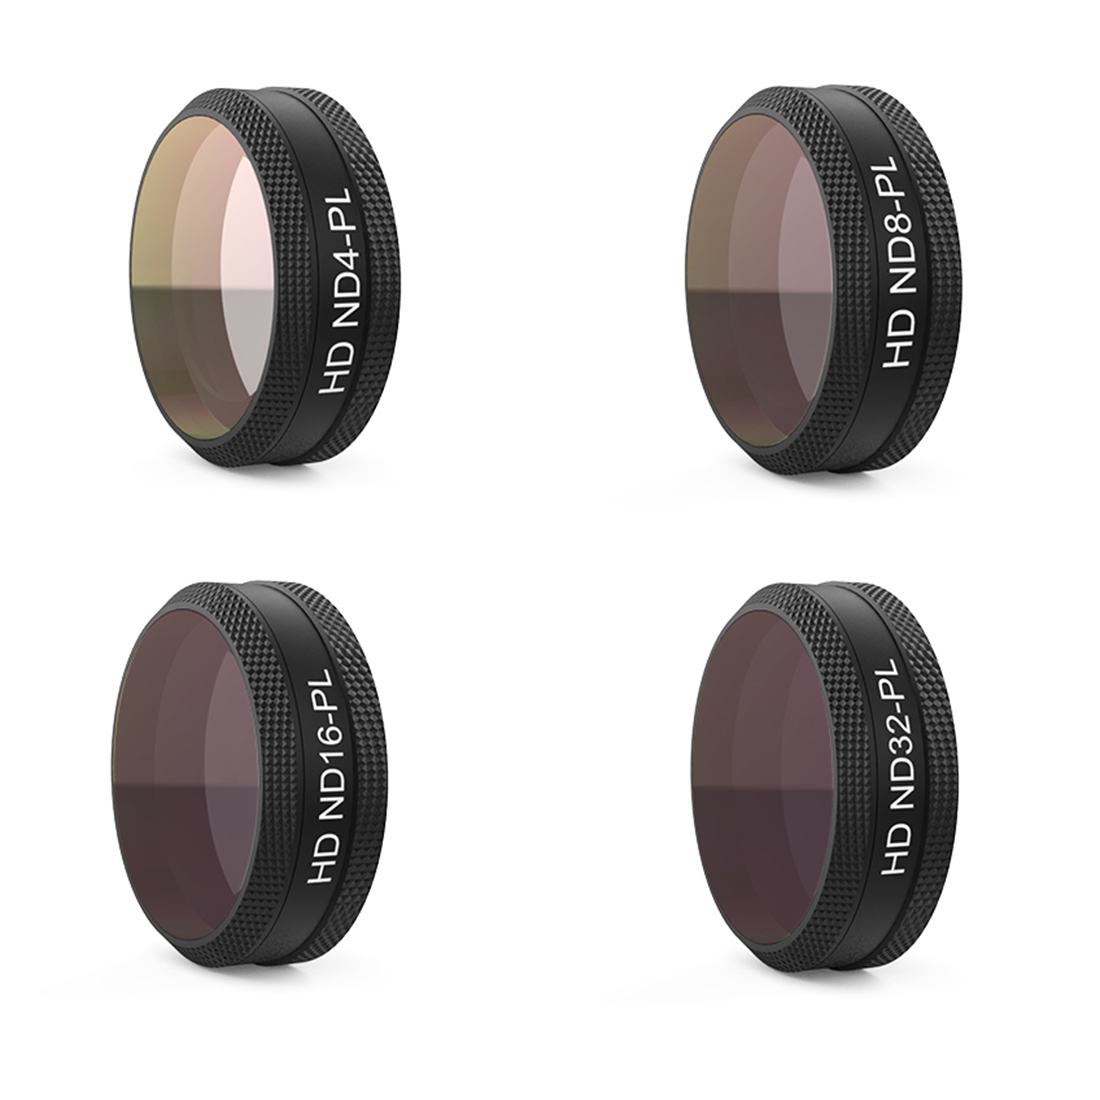 PGYTECH 4Pcs ND4 8 16 32-PL Filter Kit ND-PL Lens Filters for DJI Mavic Air RC Quadcopter Drone Accessories original dji mavic air nd filters set nd4 8 16 for mavic air camera drone filter 3pcs filter dji mavic air accessories